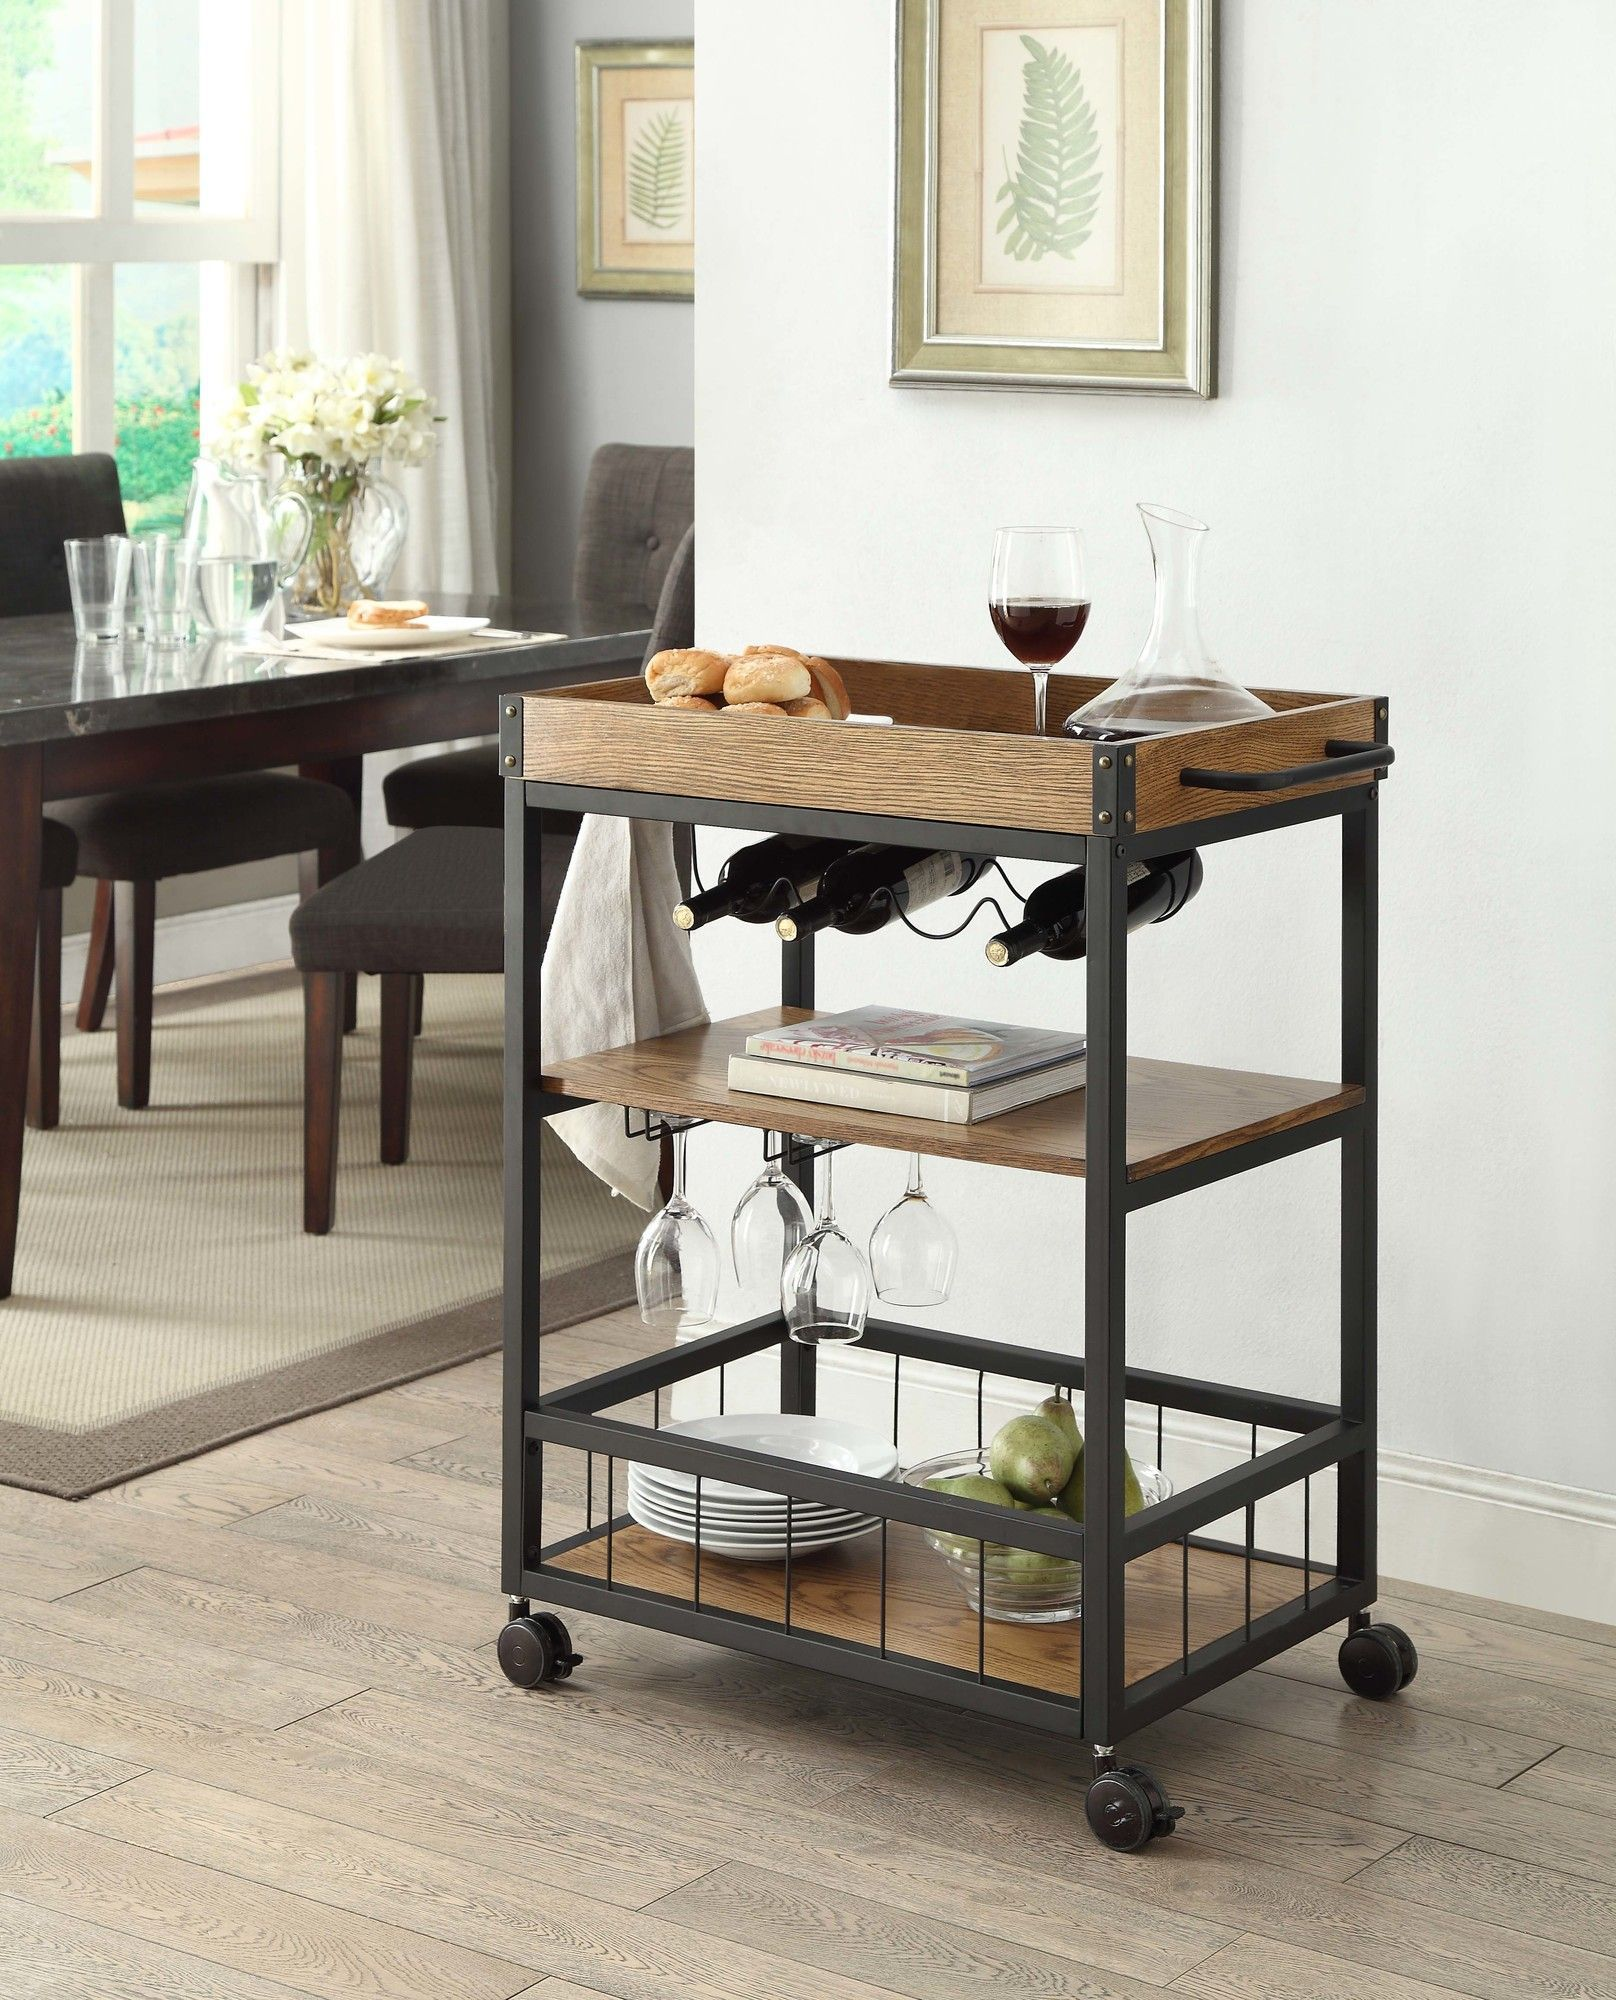 Features Product Type Kitchen Cart Base Finish Black